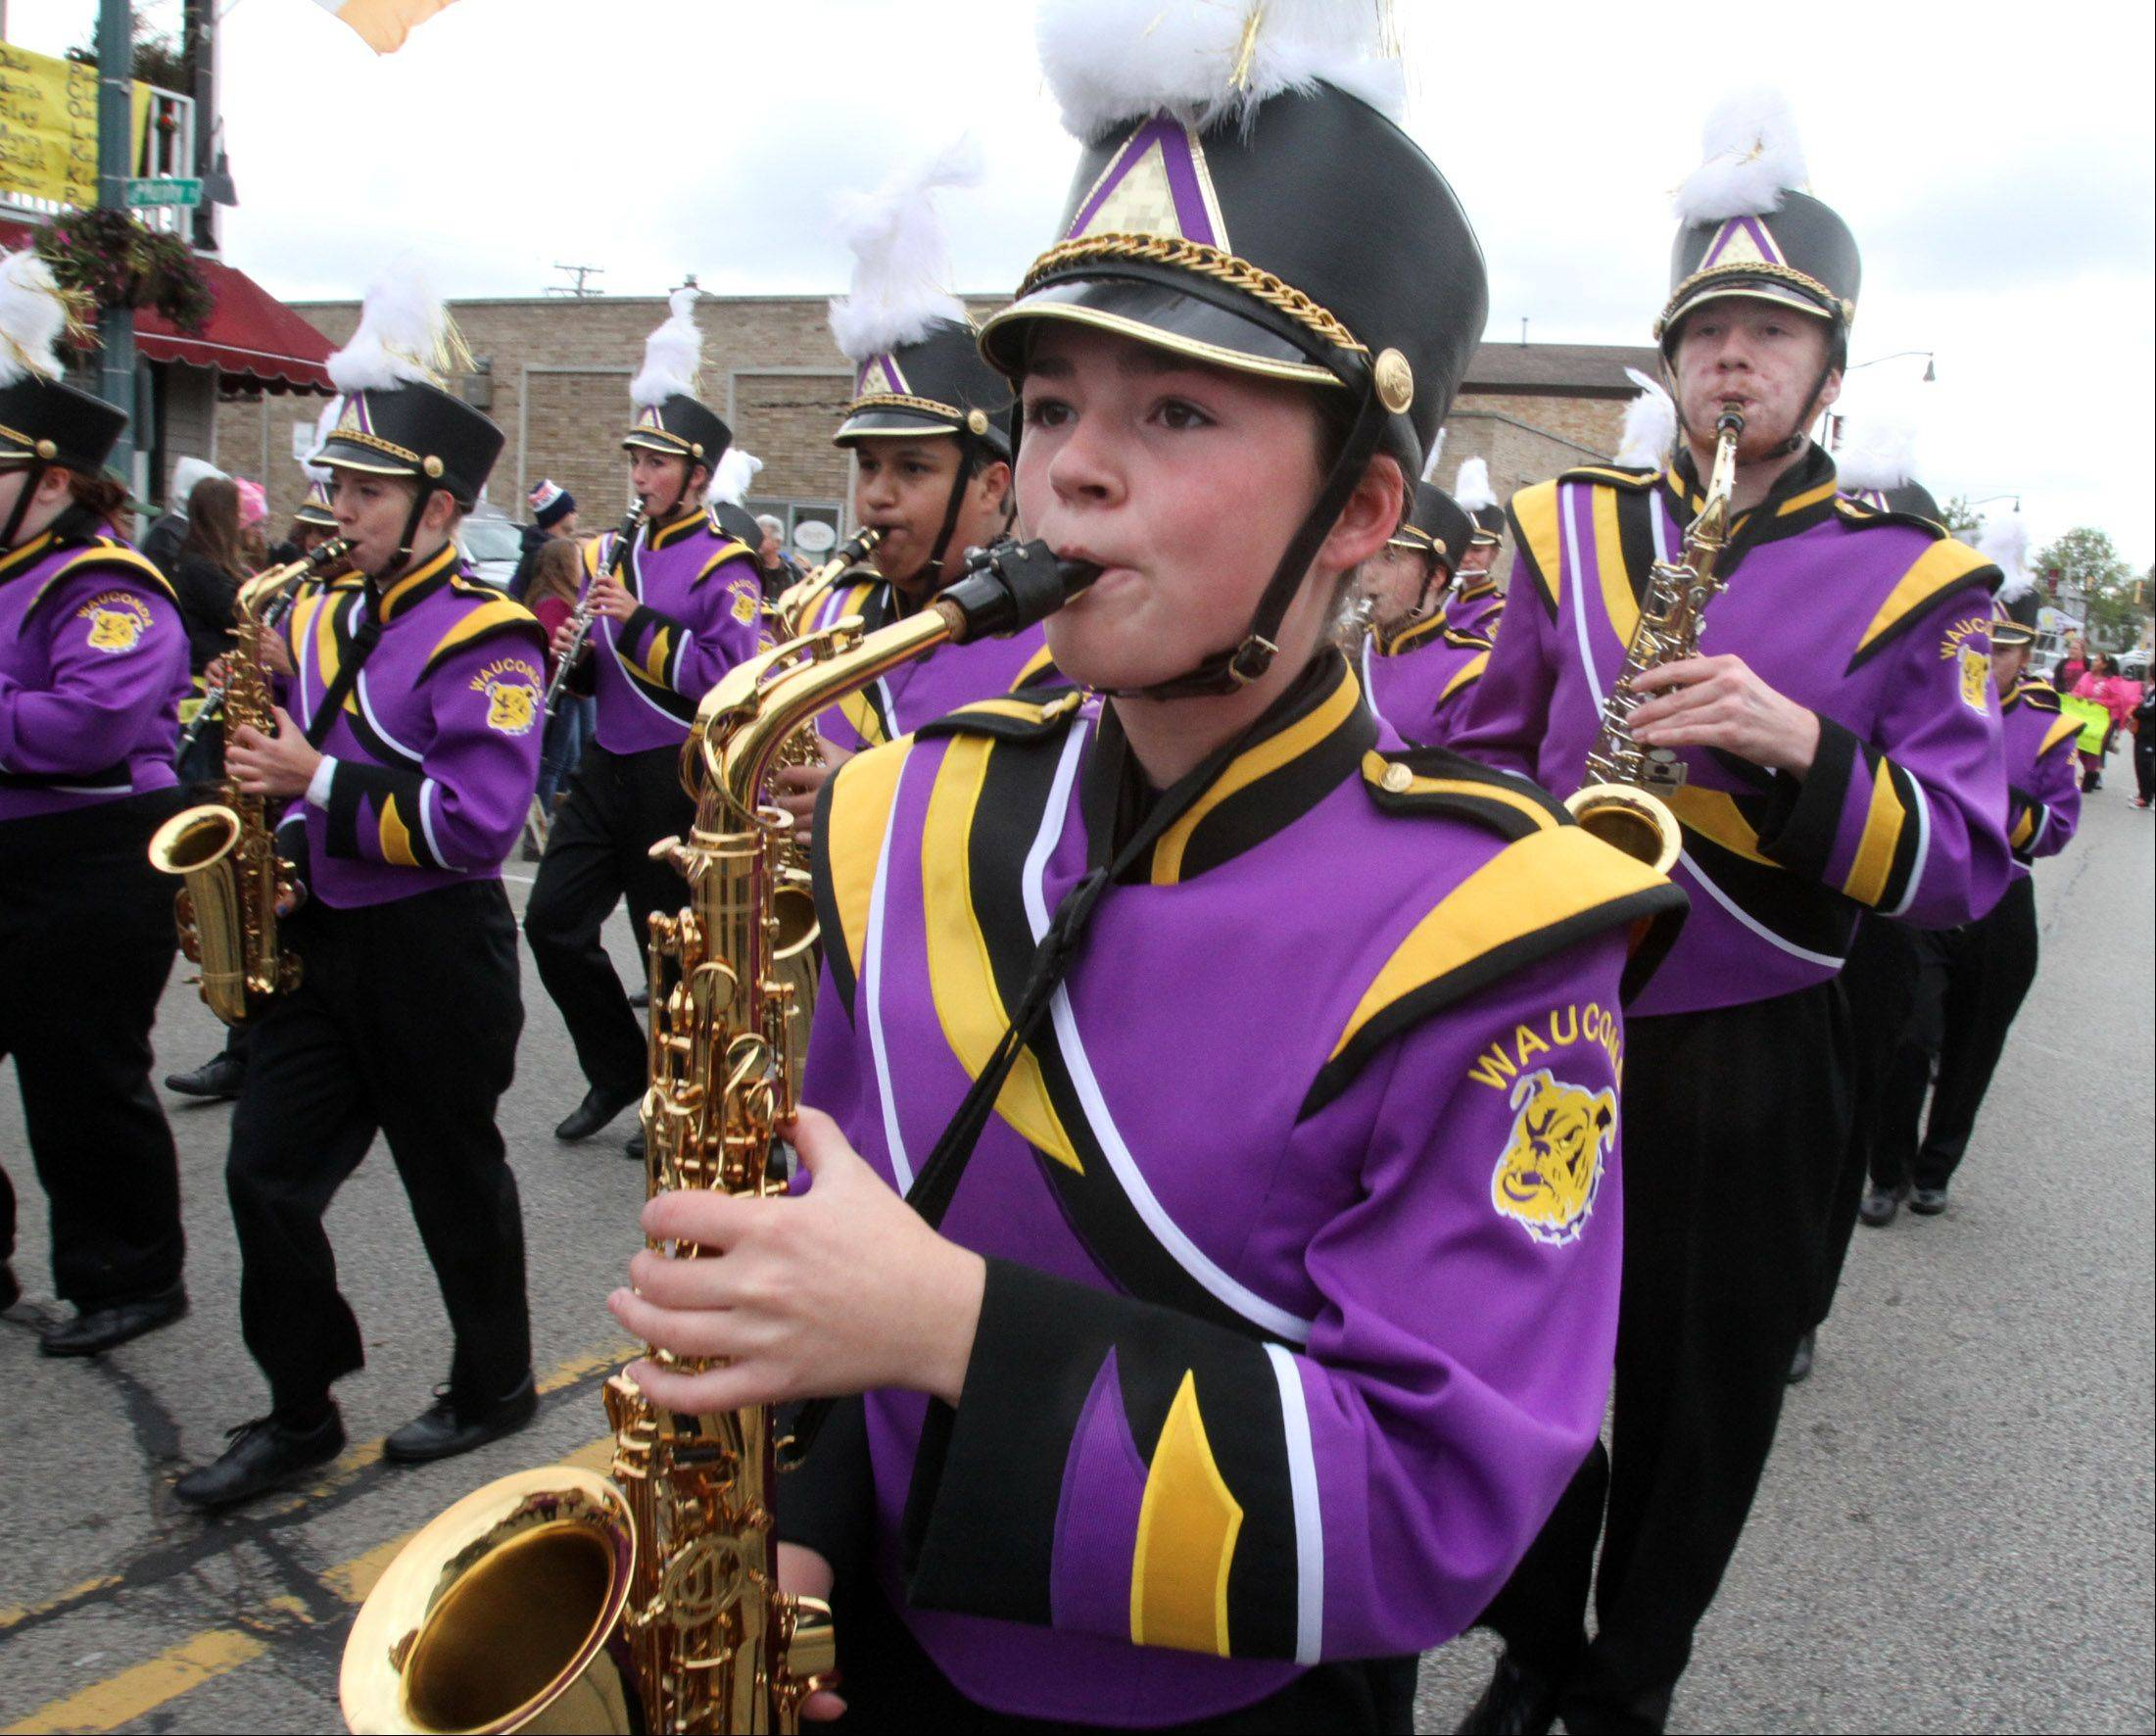 Wauconda High School's band marches in their Homecoming parade.